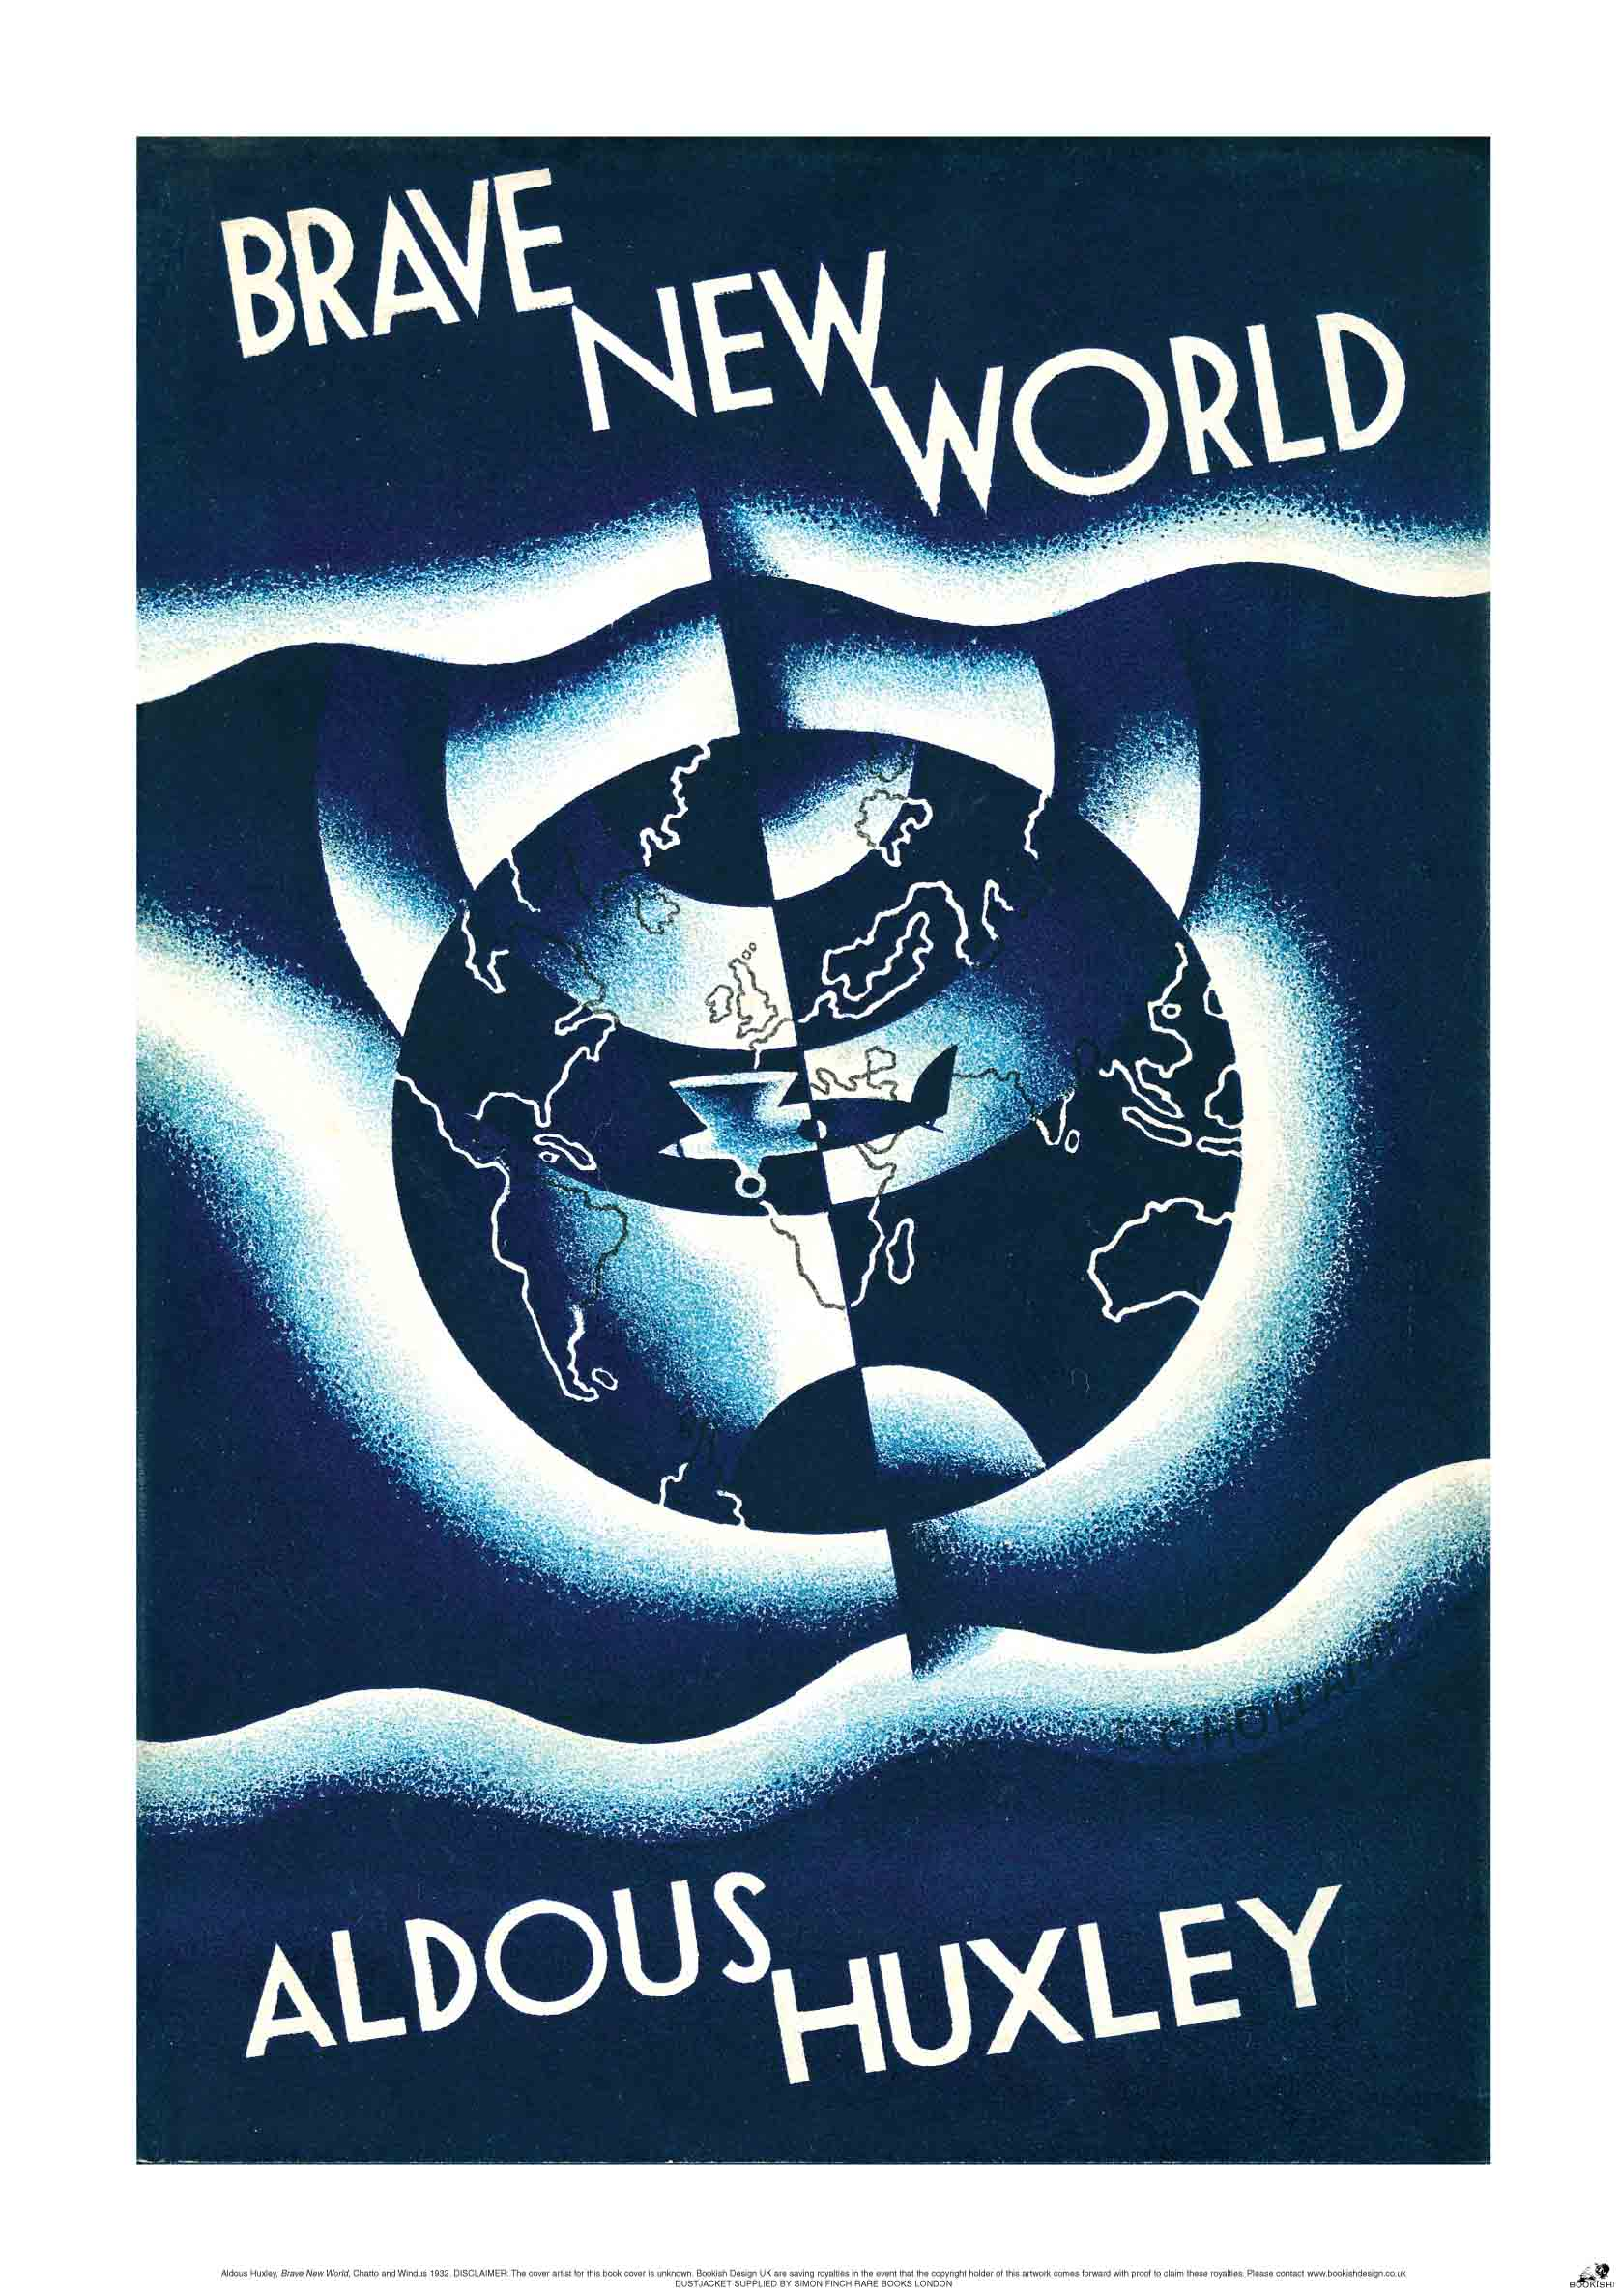 4th estate brave new world book cover